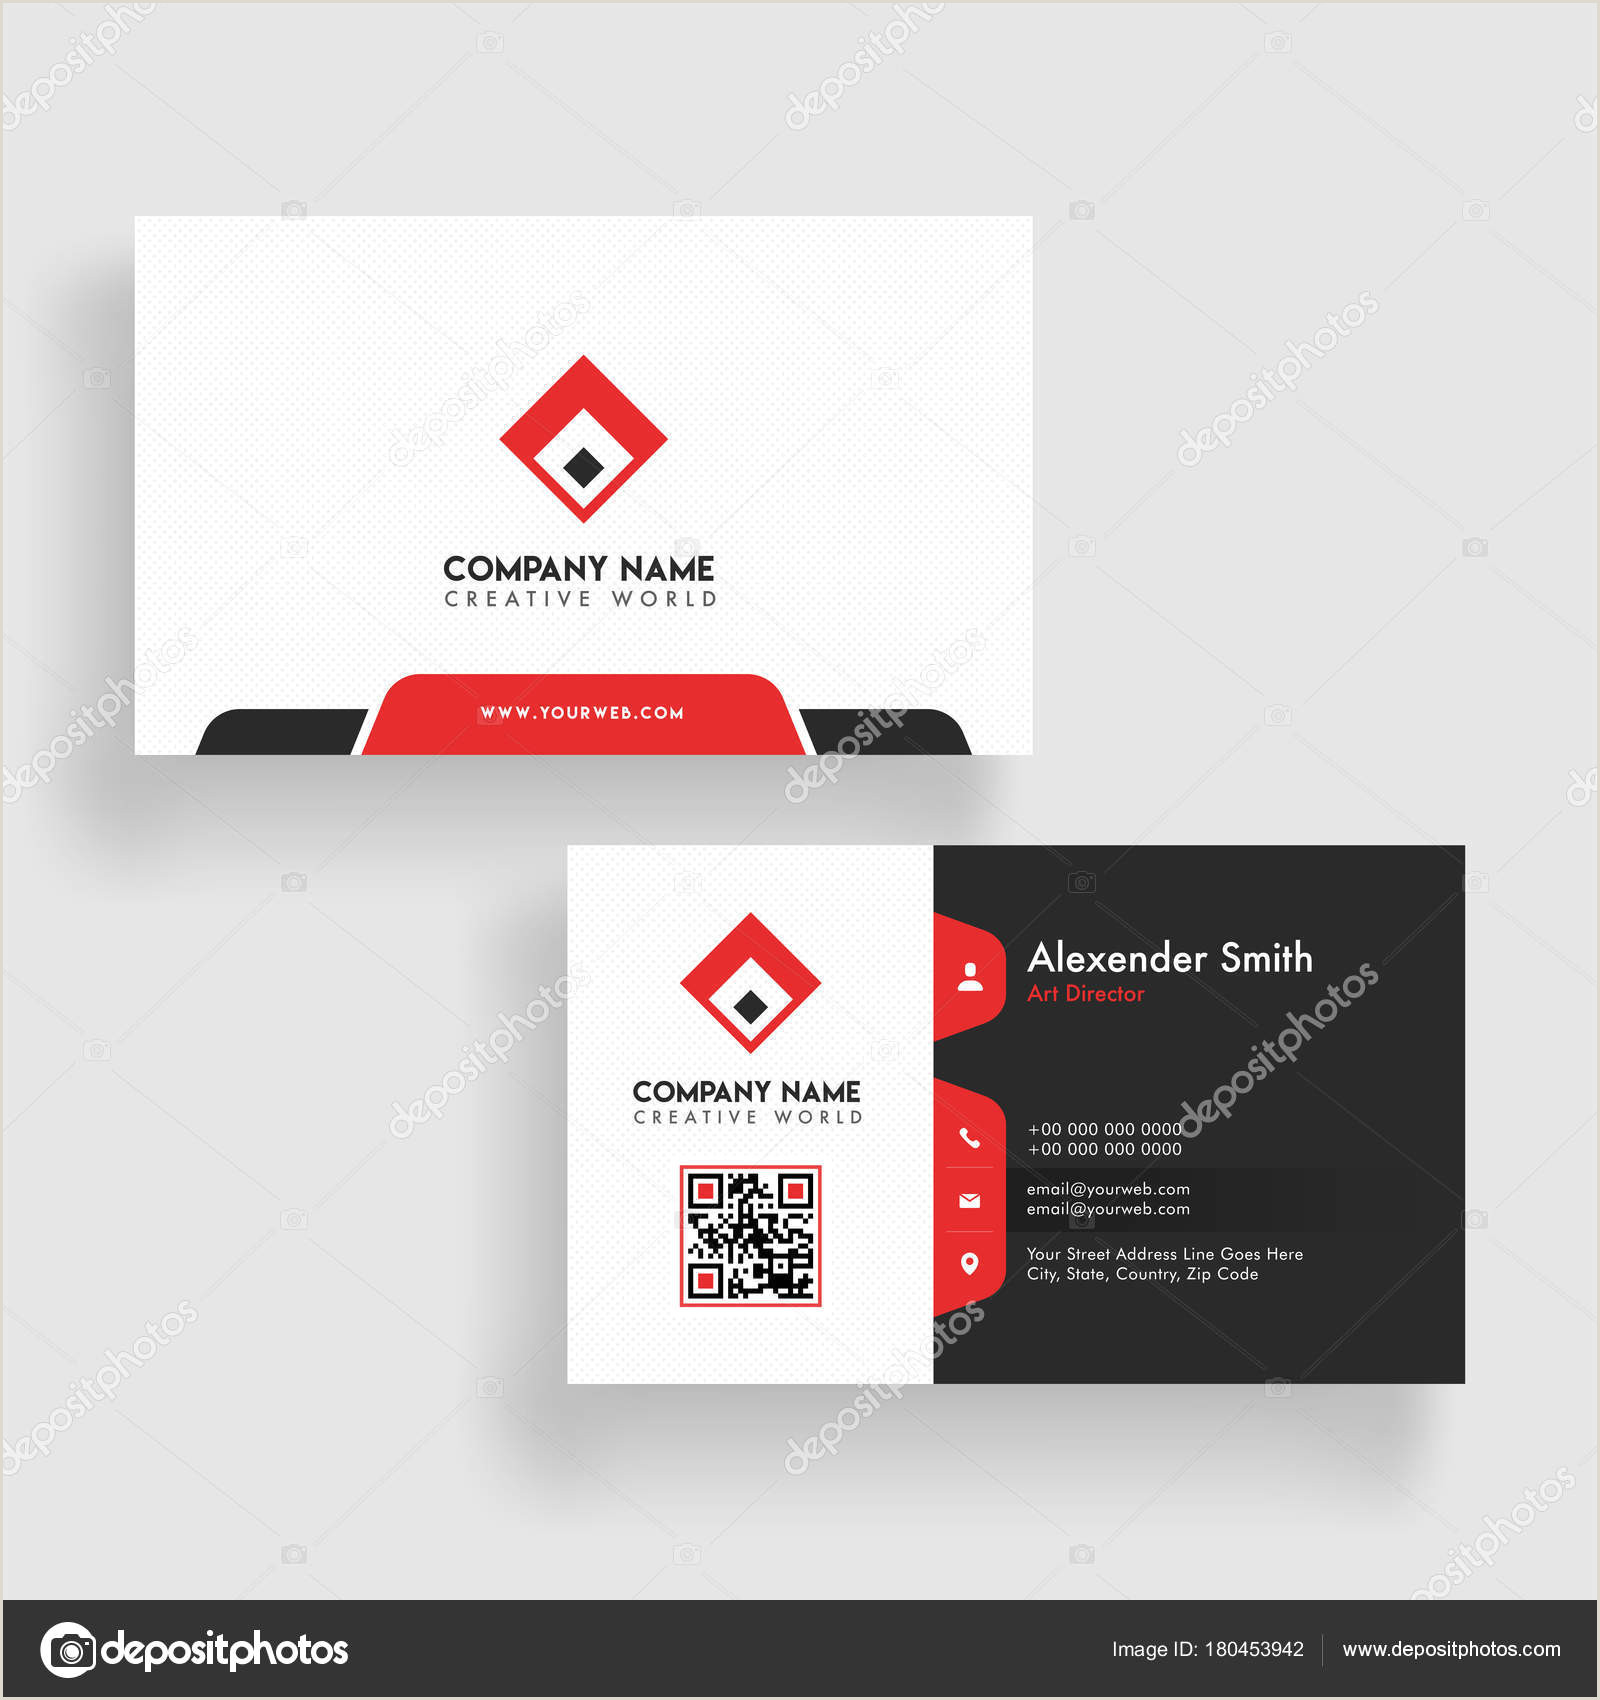 Business Card Styles Modern Business Card Template Design Both Sided Contact Card F